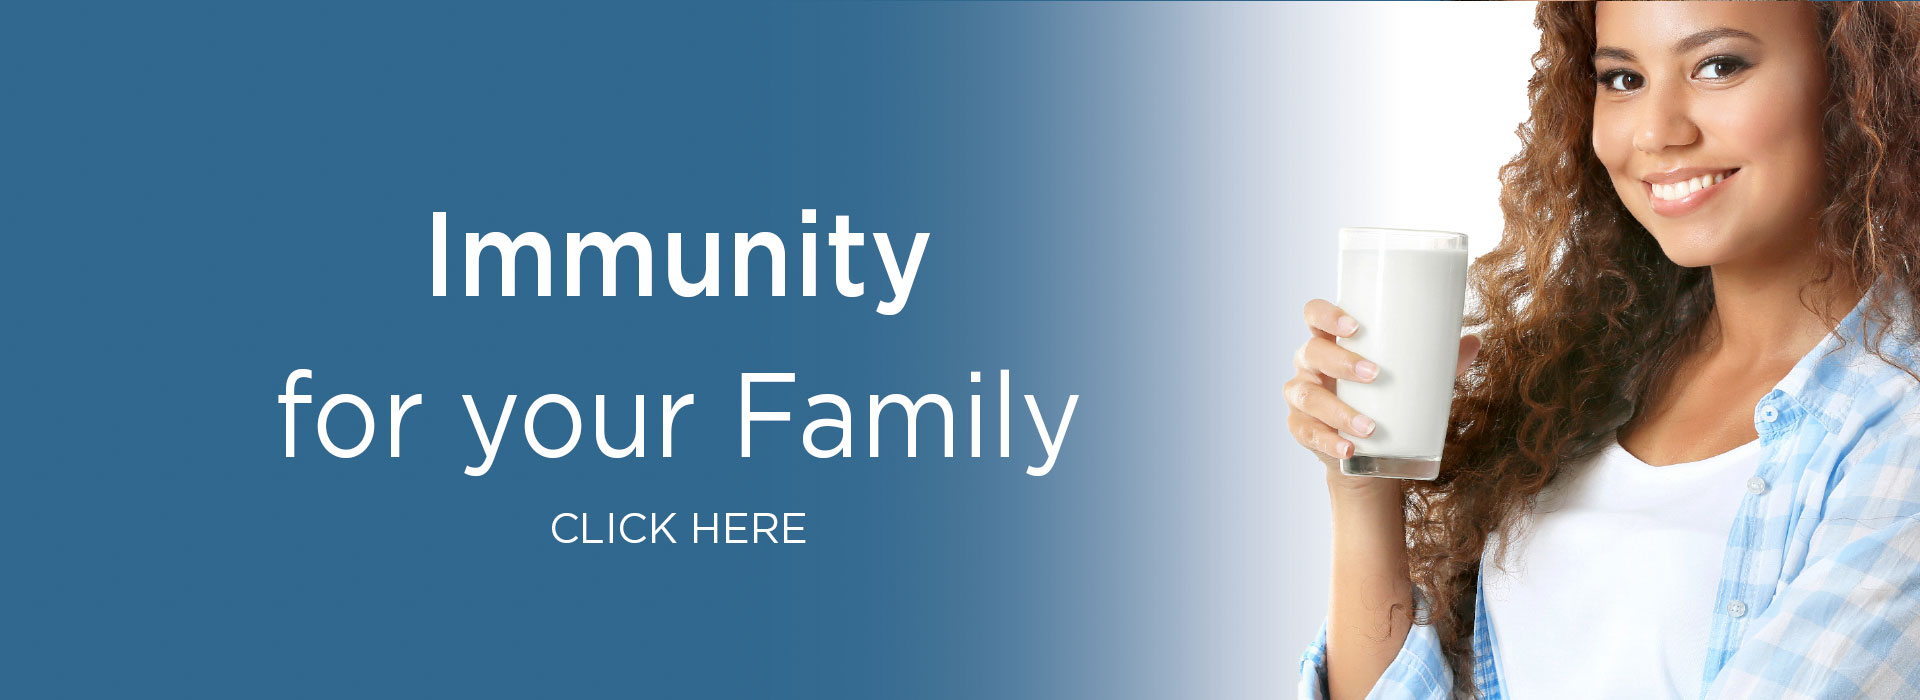 New Image International: Immunity for your Family